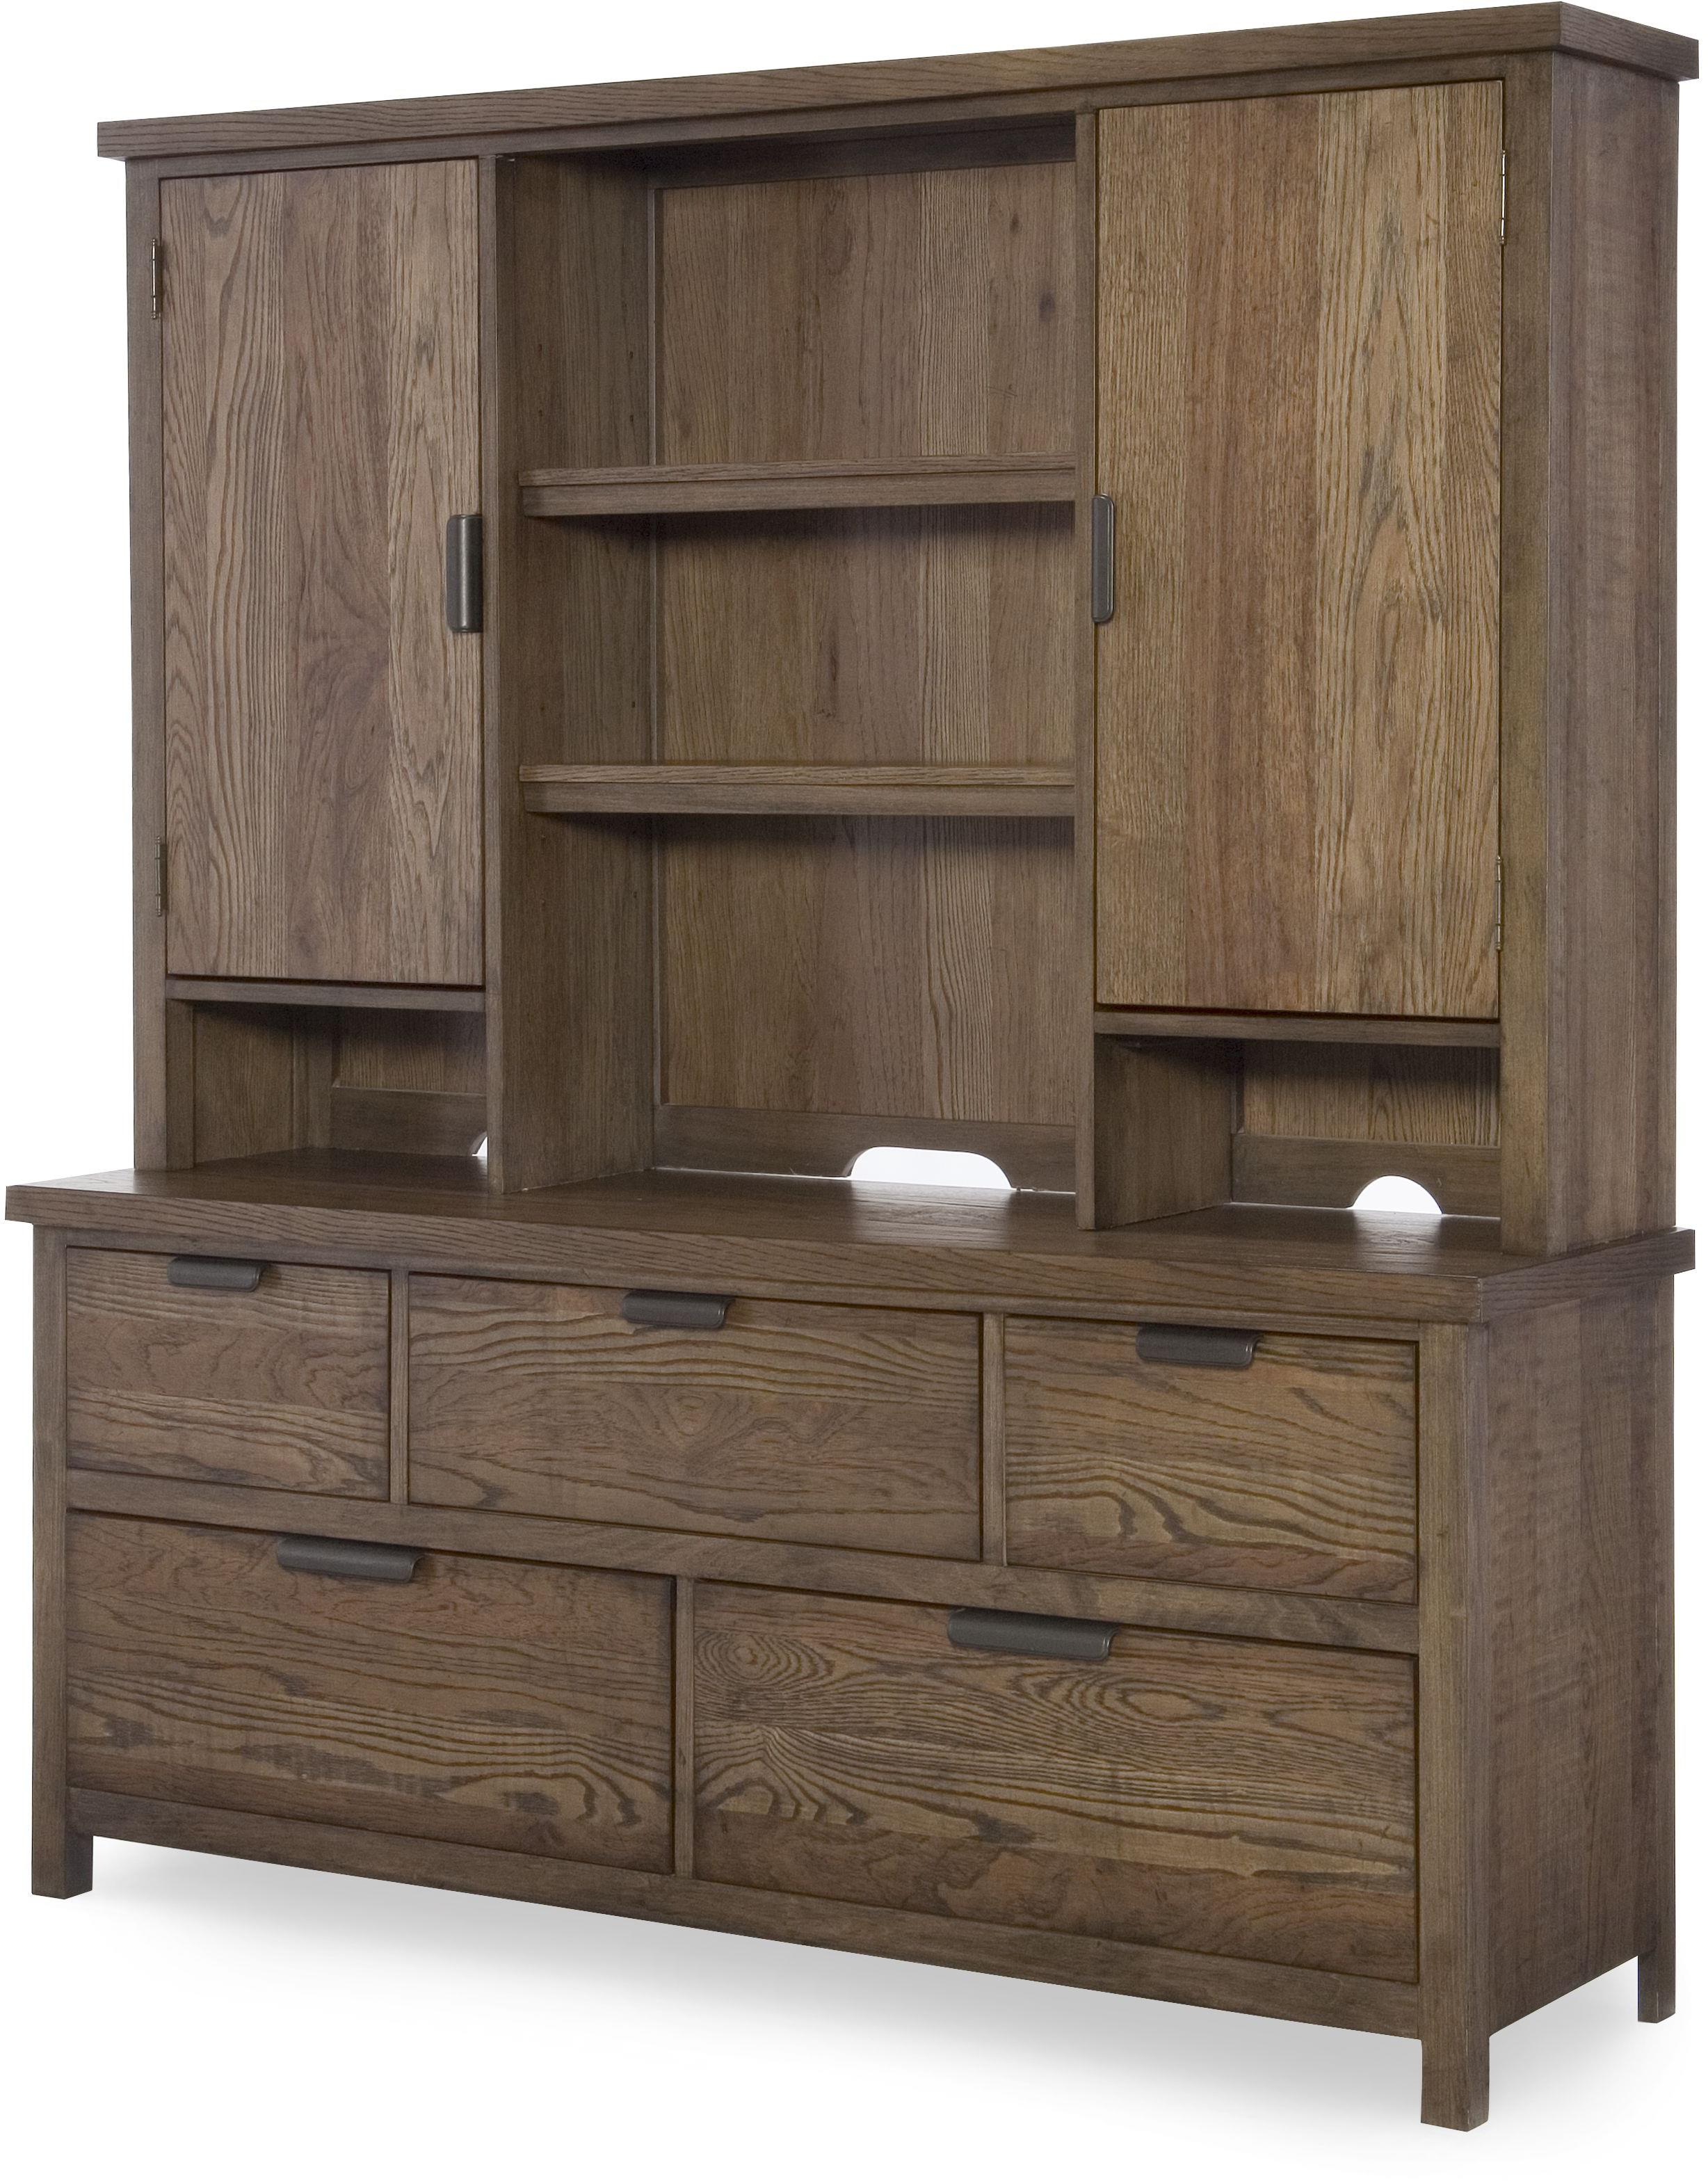 Legacy Classic Kids Fulton County Dresser with Hutch - Item Number: 5900-1200+7202